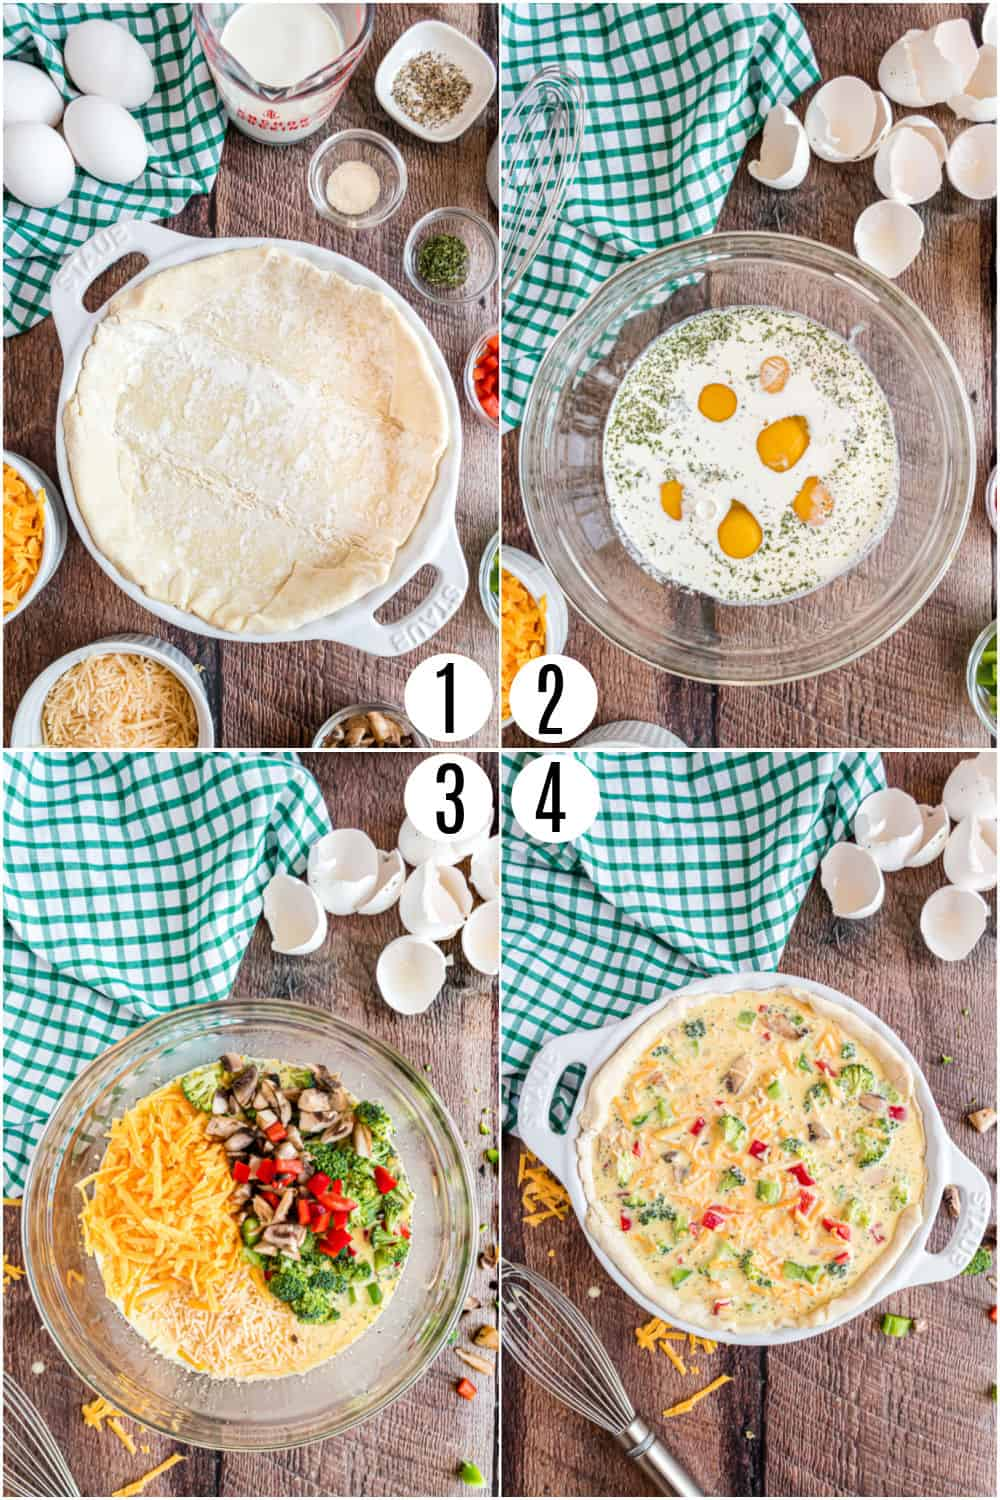 Step by step photos showing how to make a vegetable quiche in a pie plate.